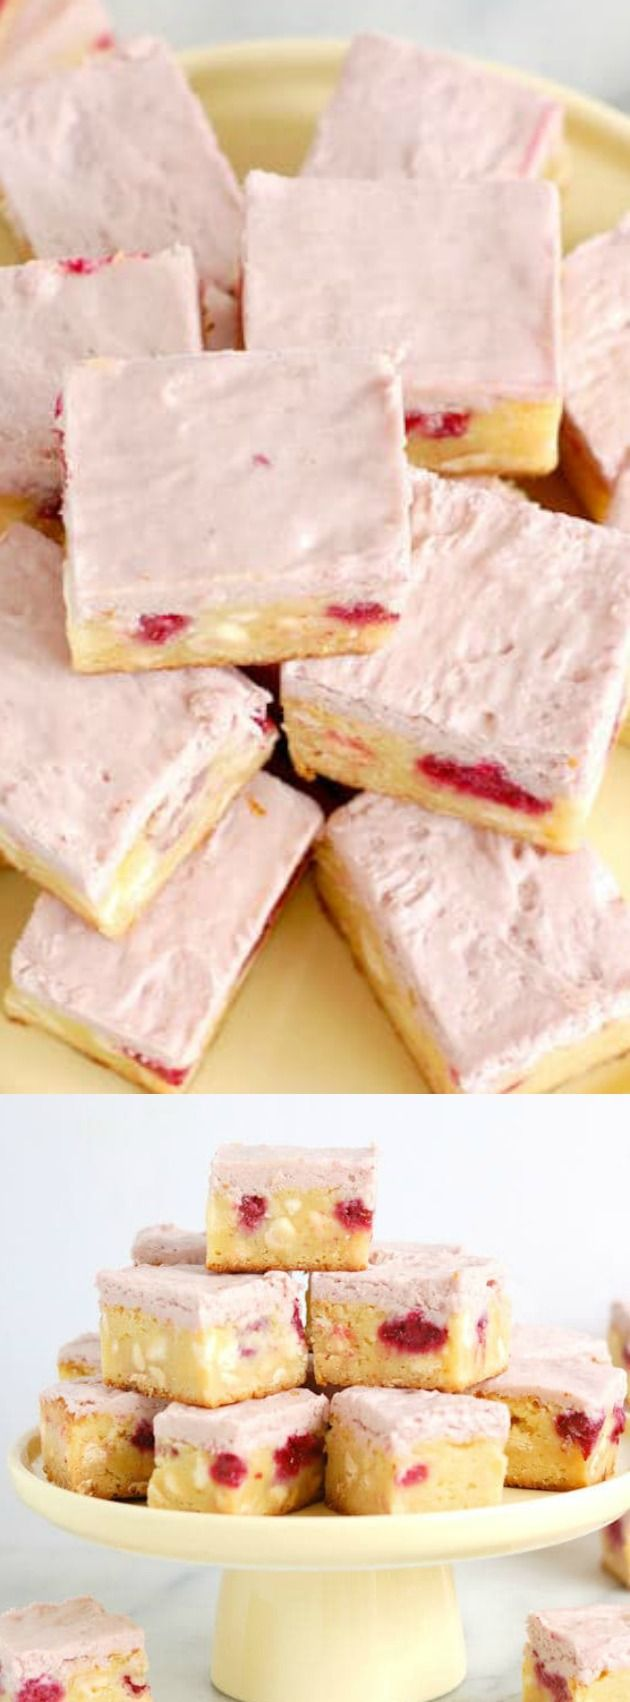 These White Chocolate Brownies with Raspberries from Baking Sense are not your ordinary brownies. They are made with sweet white chocolate, filled with raspberries, and topped with a whipped white chocolate raspberry ganache!